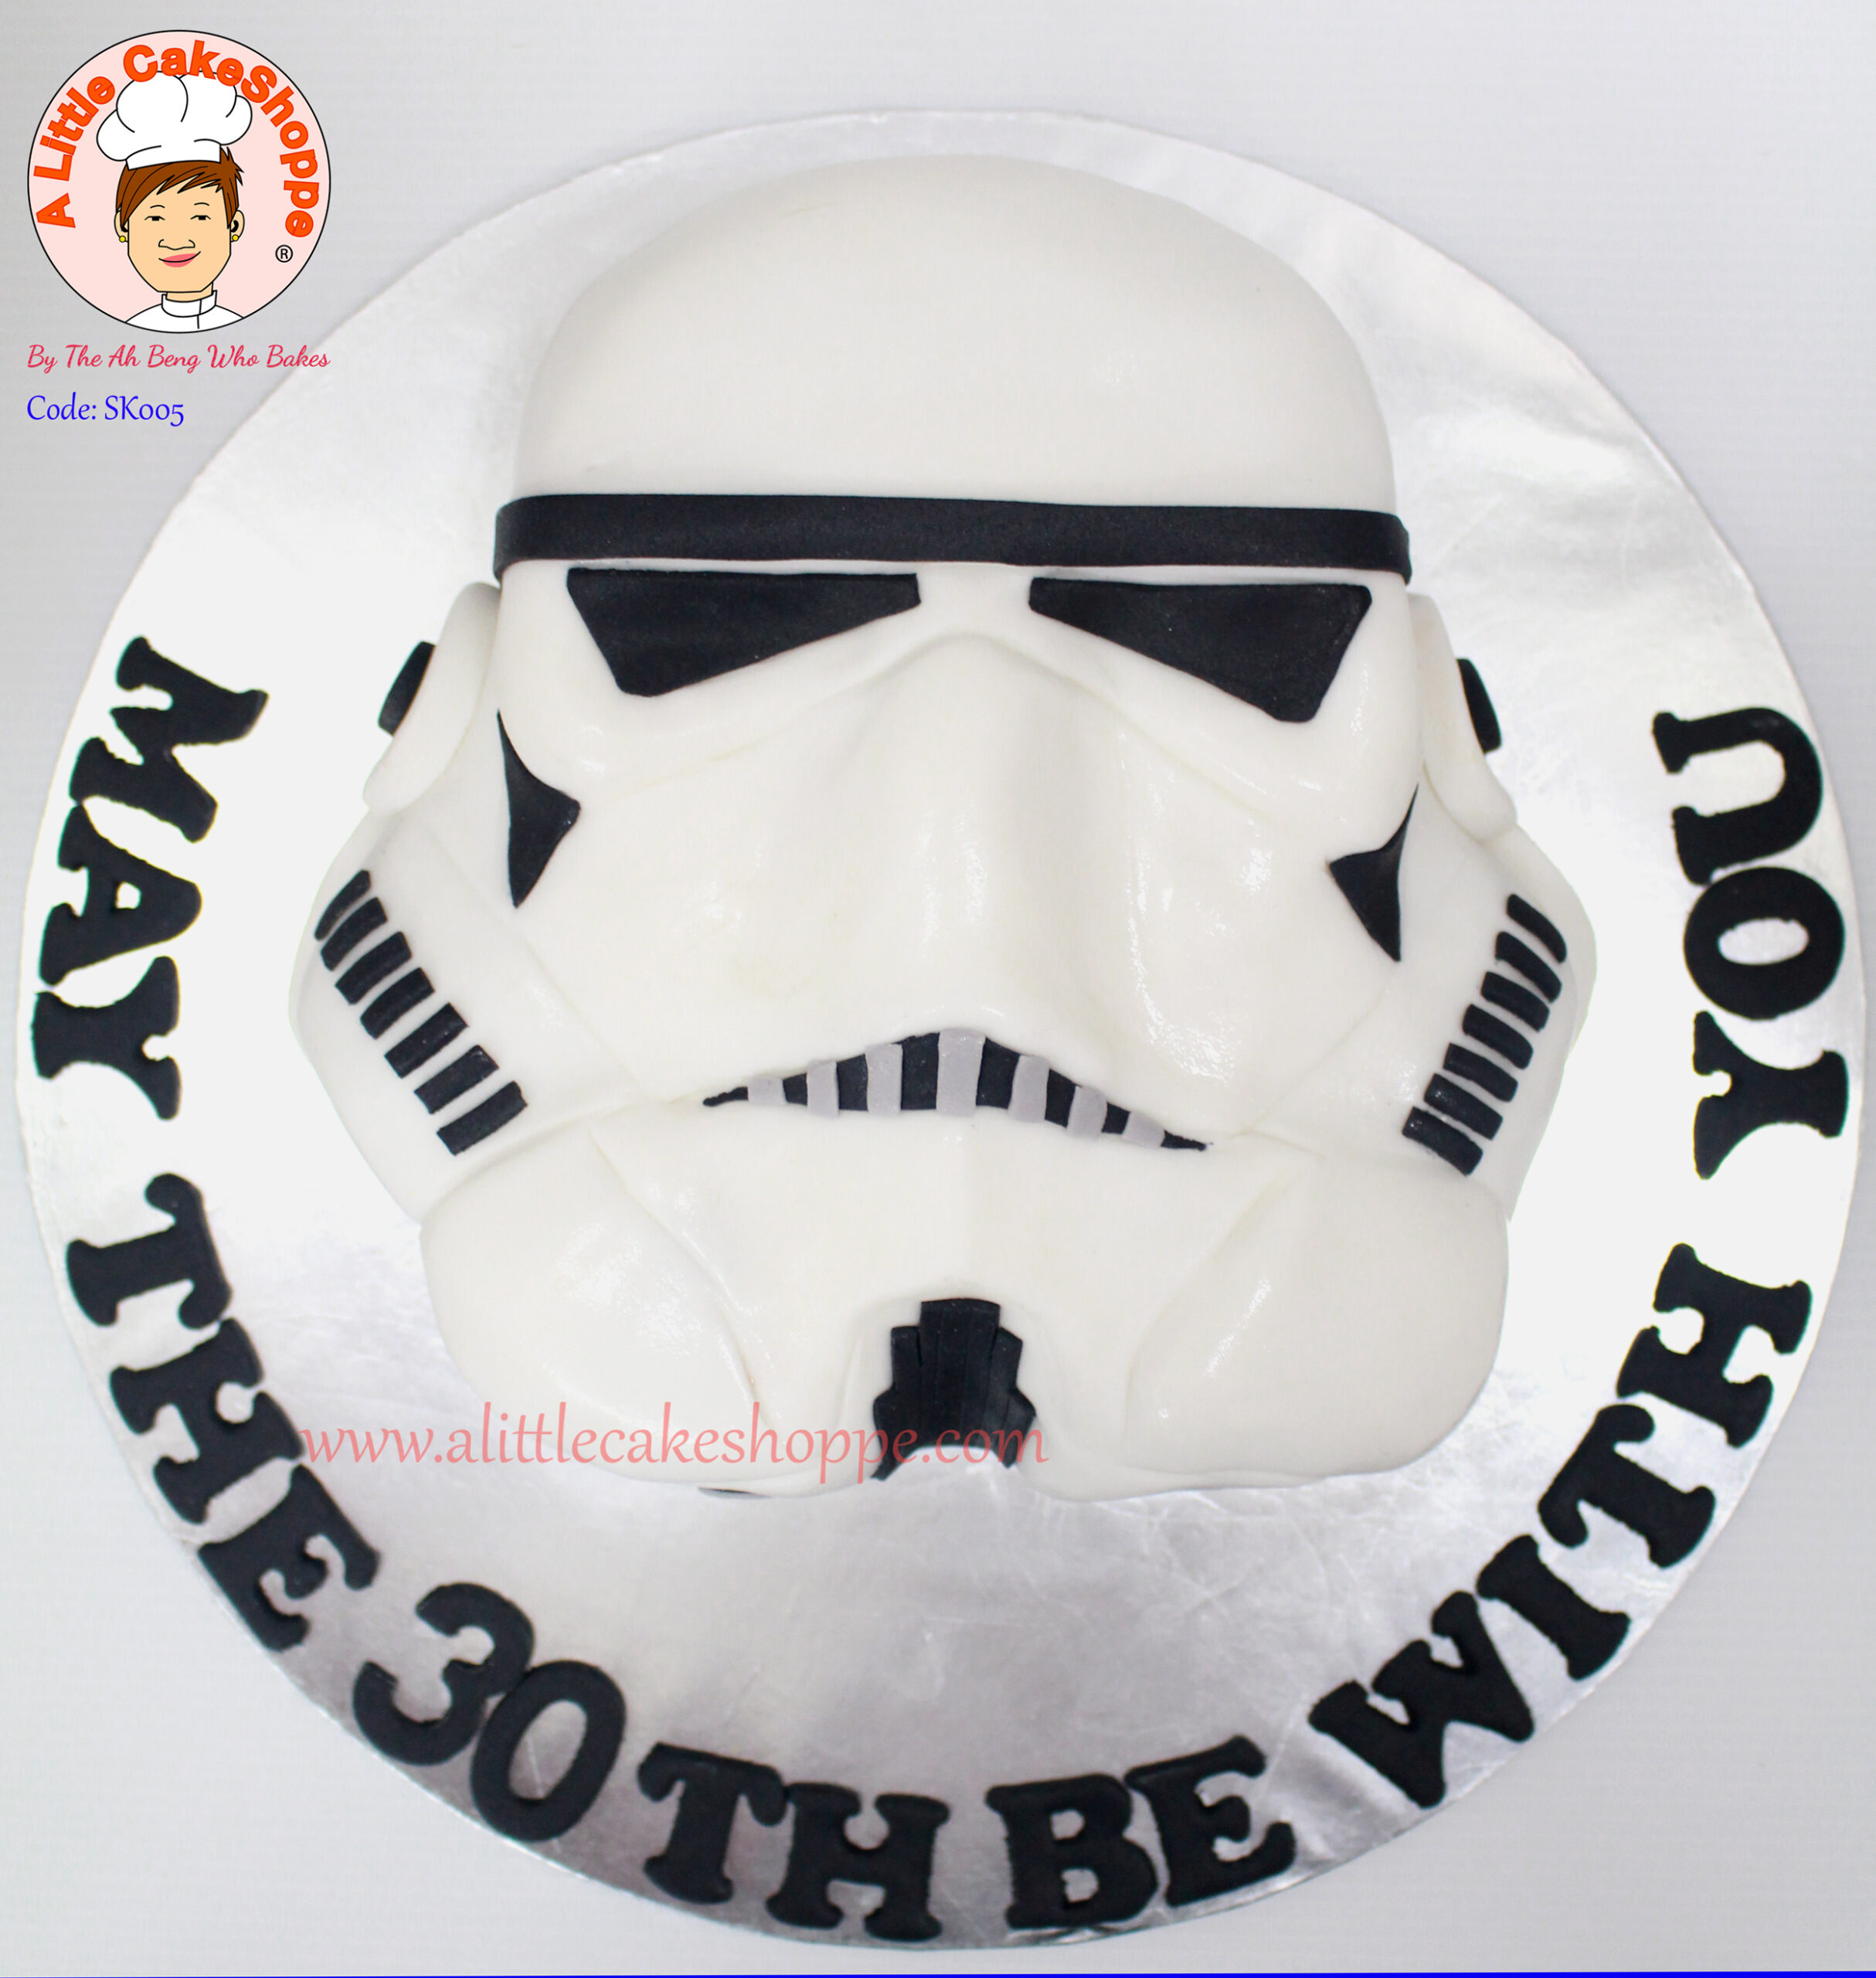 Best Customised Cake Singapore custom cake 2D 3D birthday cake cupcakes desserts wedding corporate events anniversary 1st birthday 21st birthday fondant fresh cream buttercream cakes alittlecakeshoppe a little cake shoppe compliments review singapore bakers SG cakeshop ah beng who bakes starwars stormtroopers